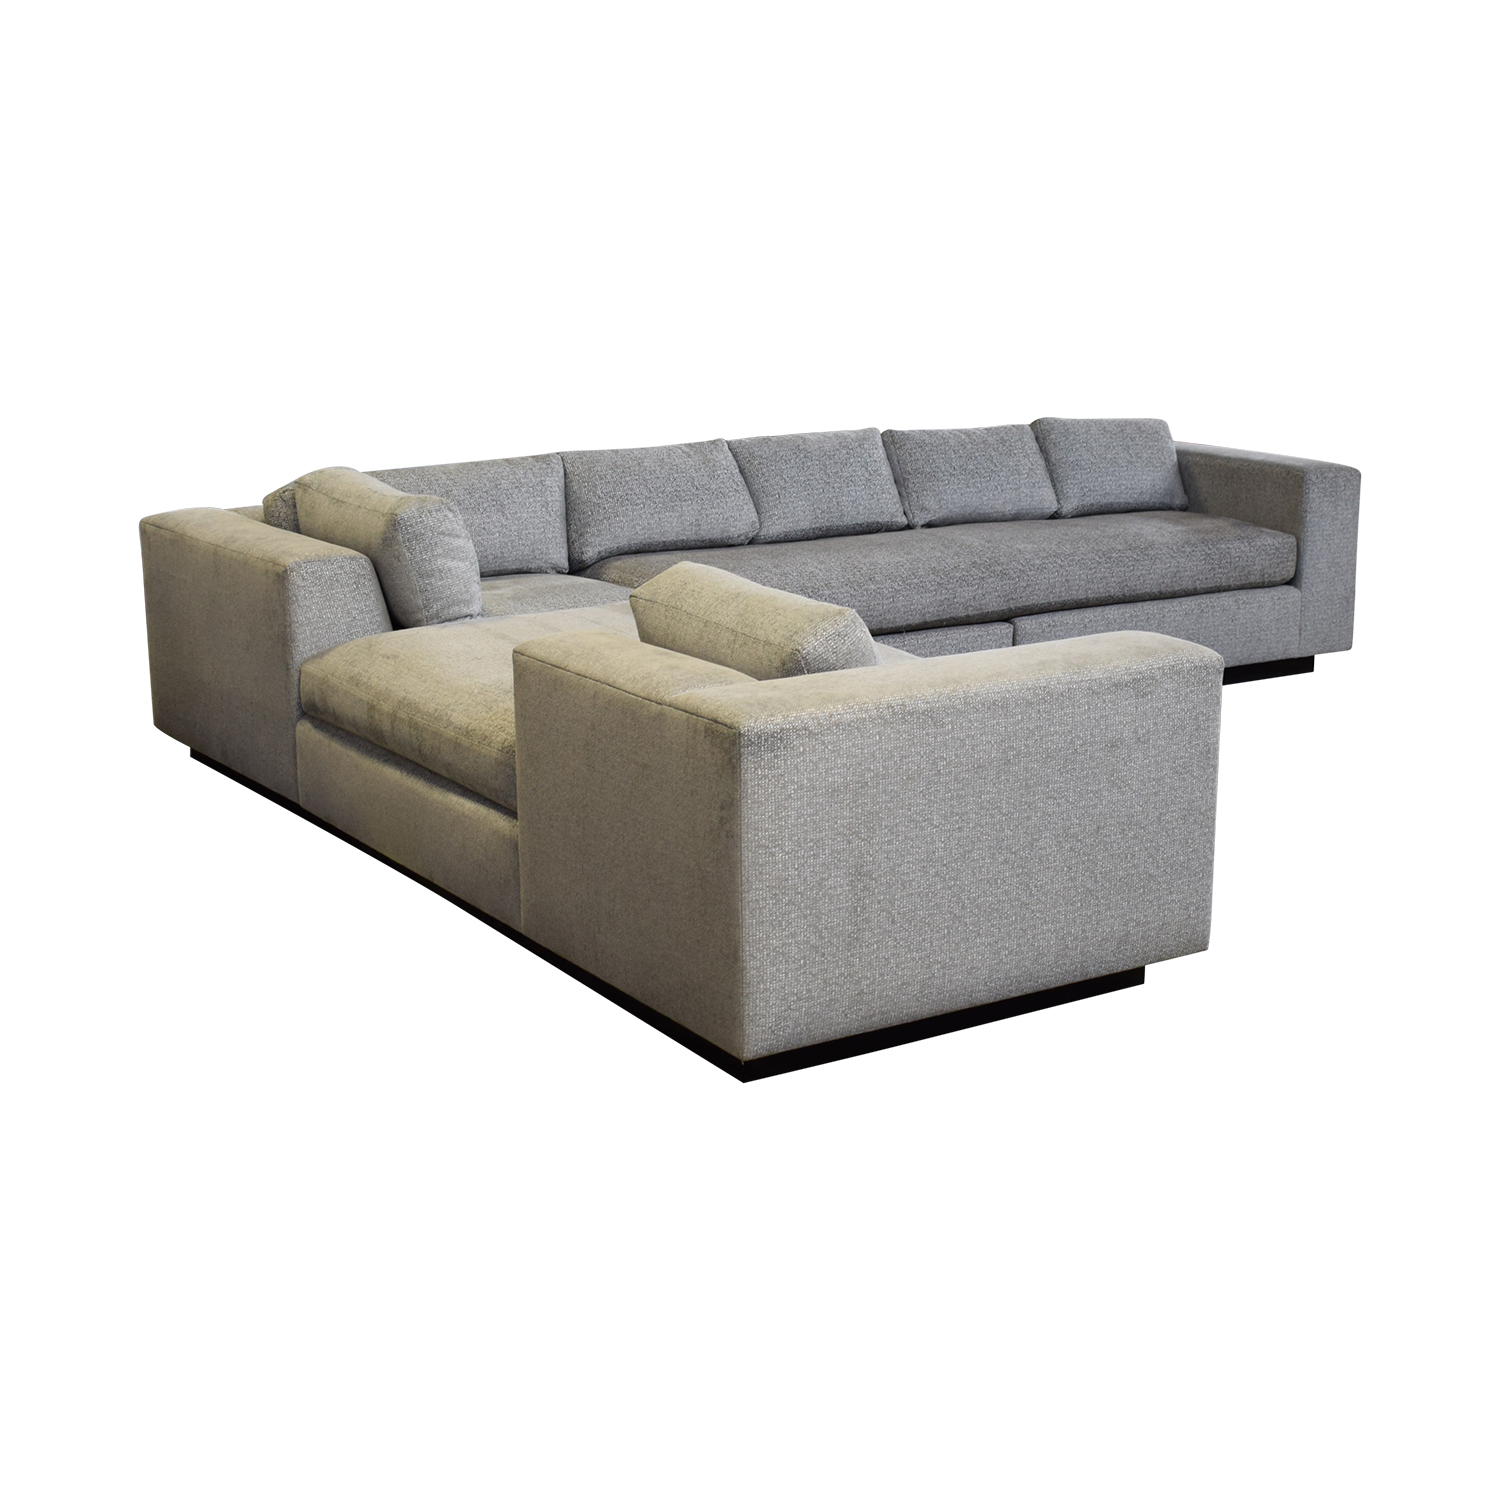 Phenomenal 83 Off Ferrell Mittman Ferrell Mittman Cooper Sectional Sofa With Reverse Chaise Sofas Gmtry Best Dining Table And Chair Ideas Images Gmtryco